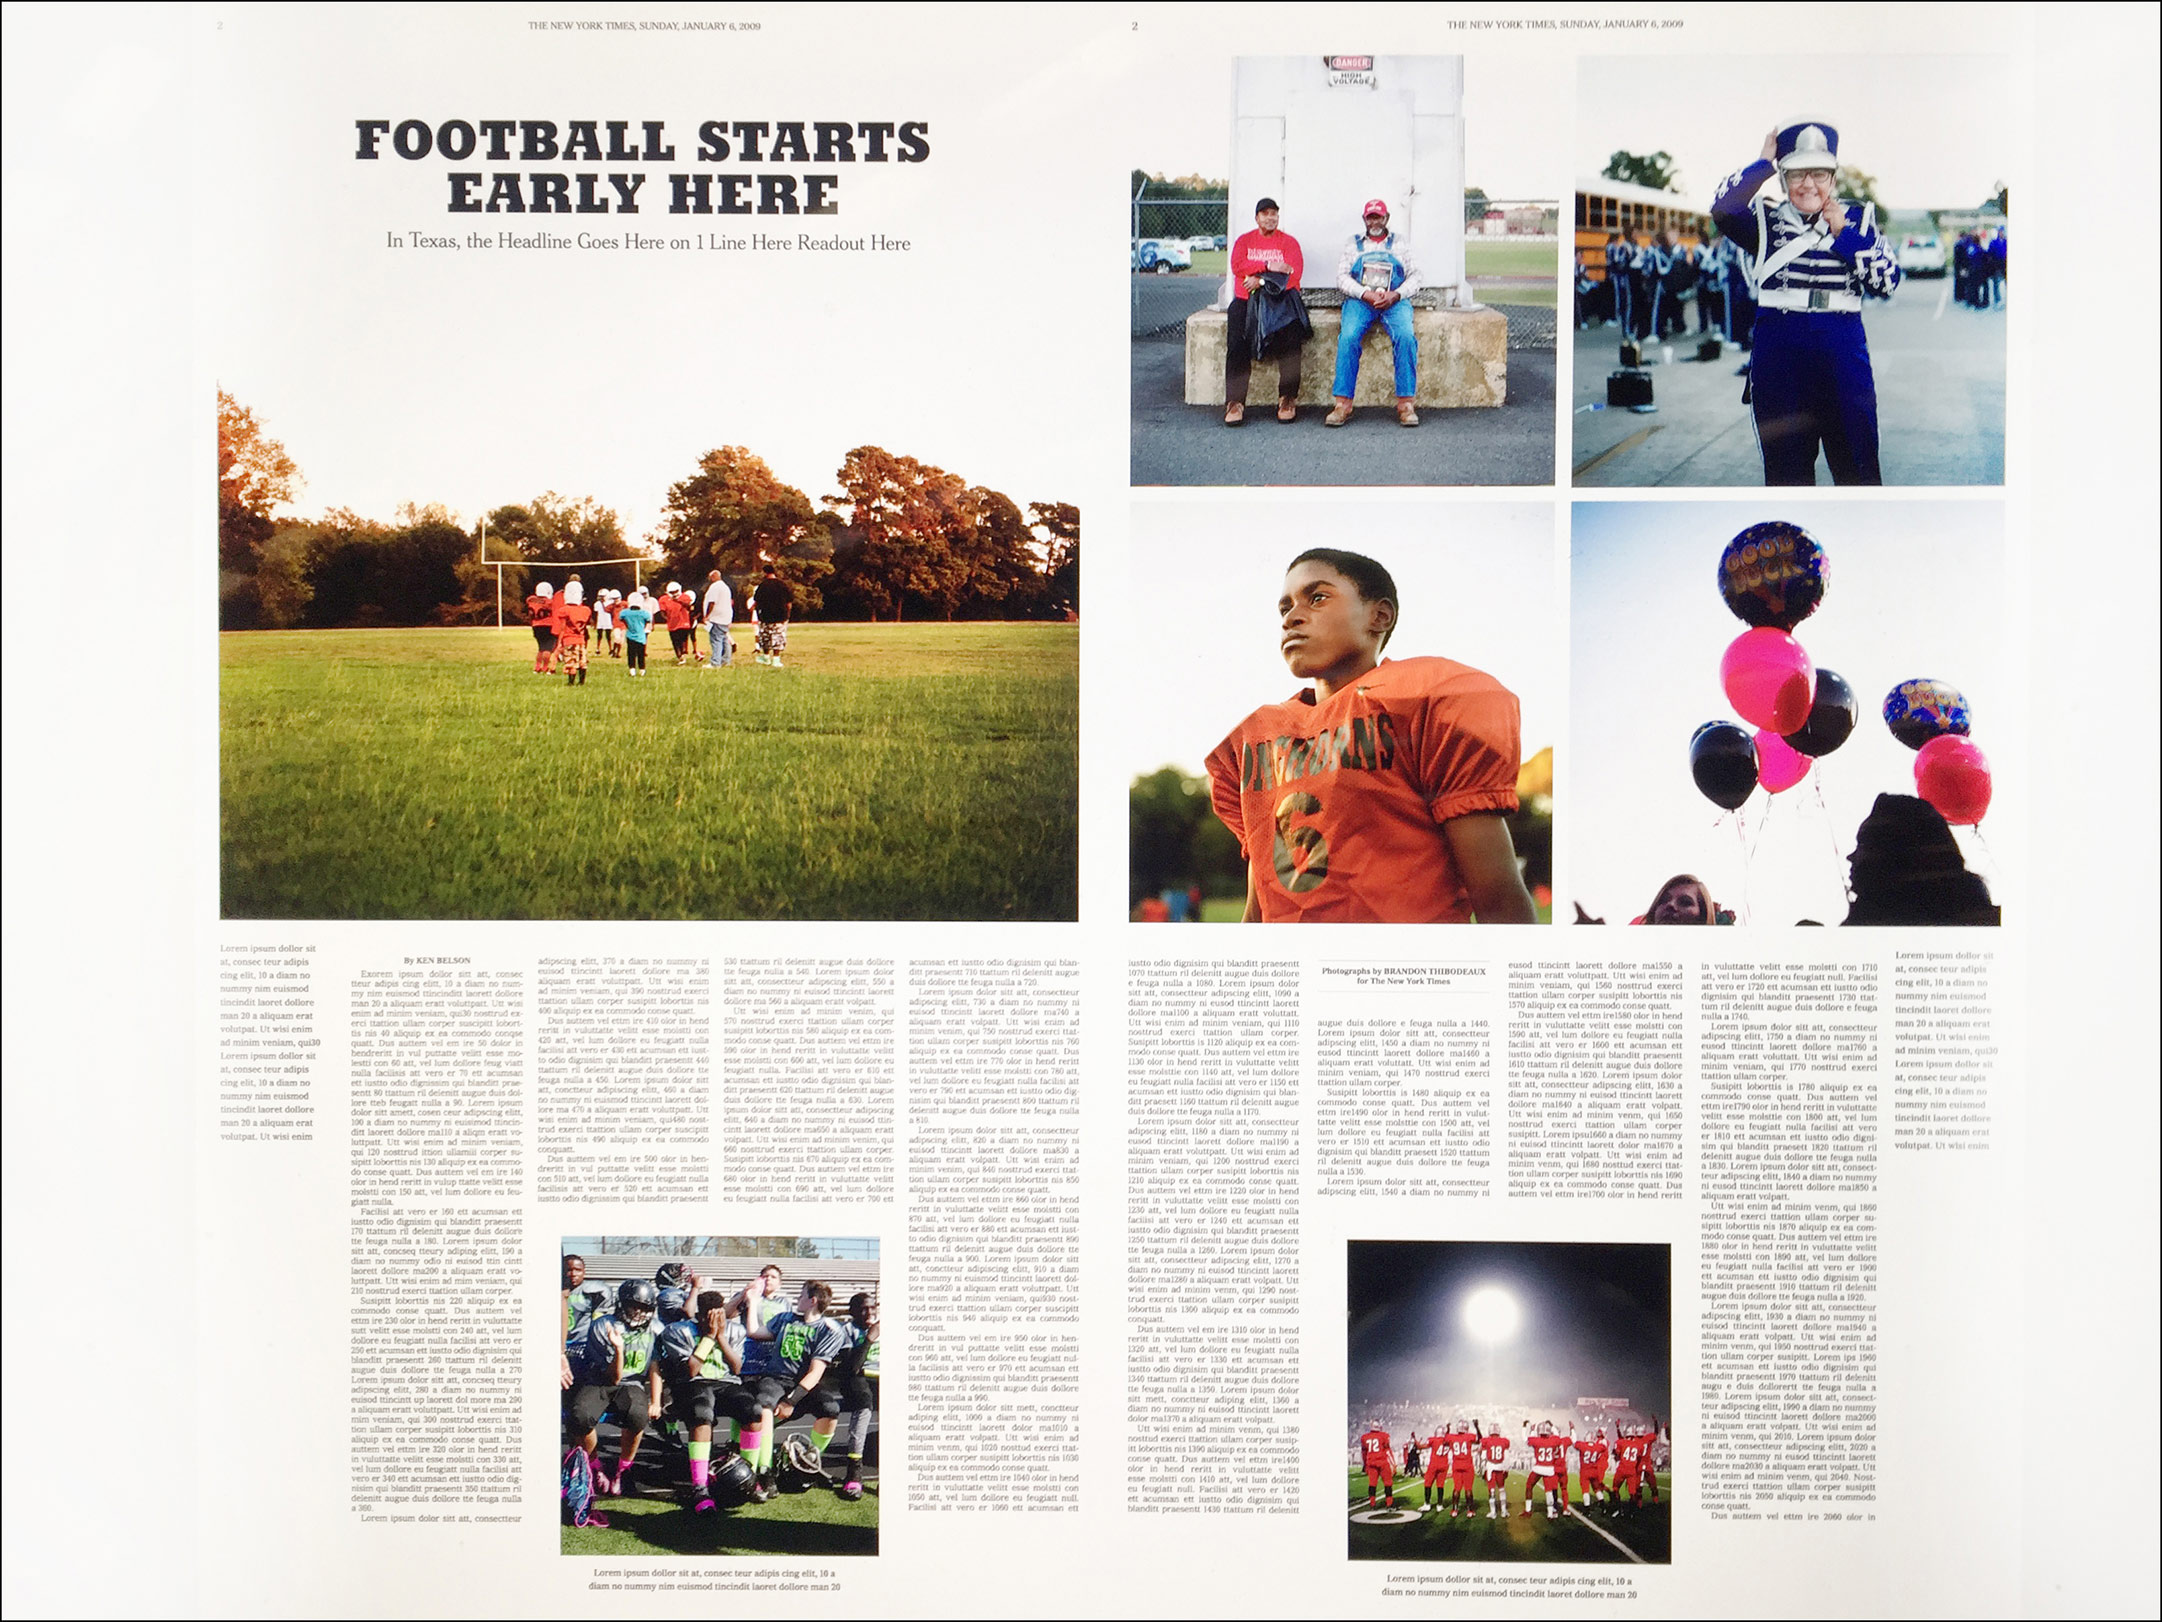 Texas Pee Wee Football for New York Times